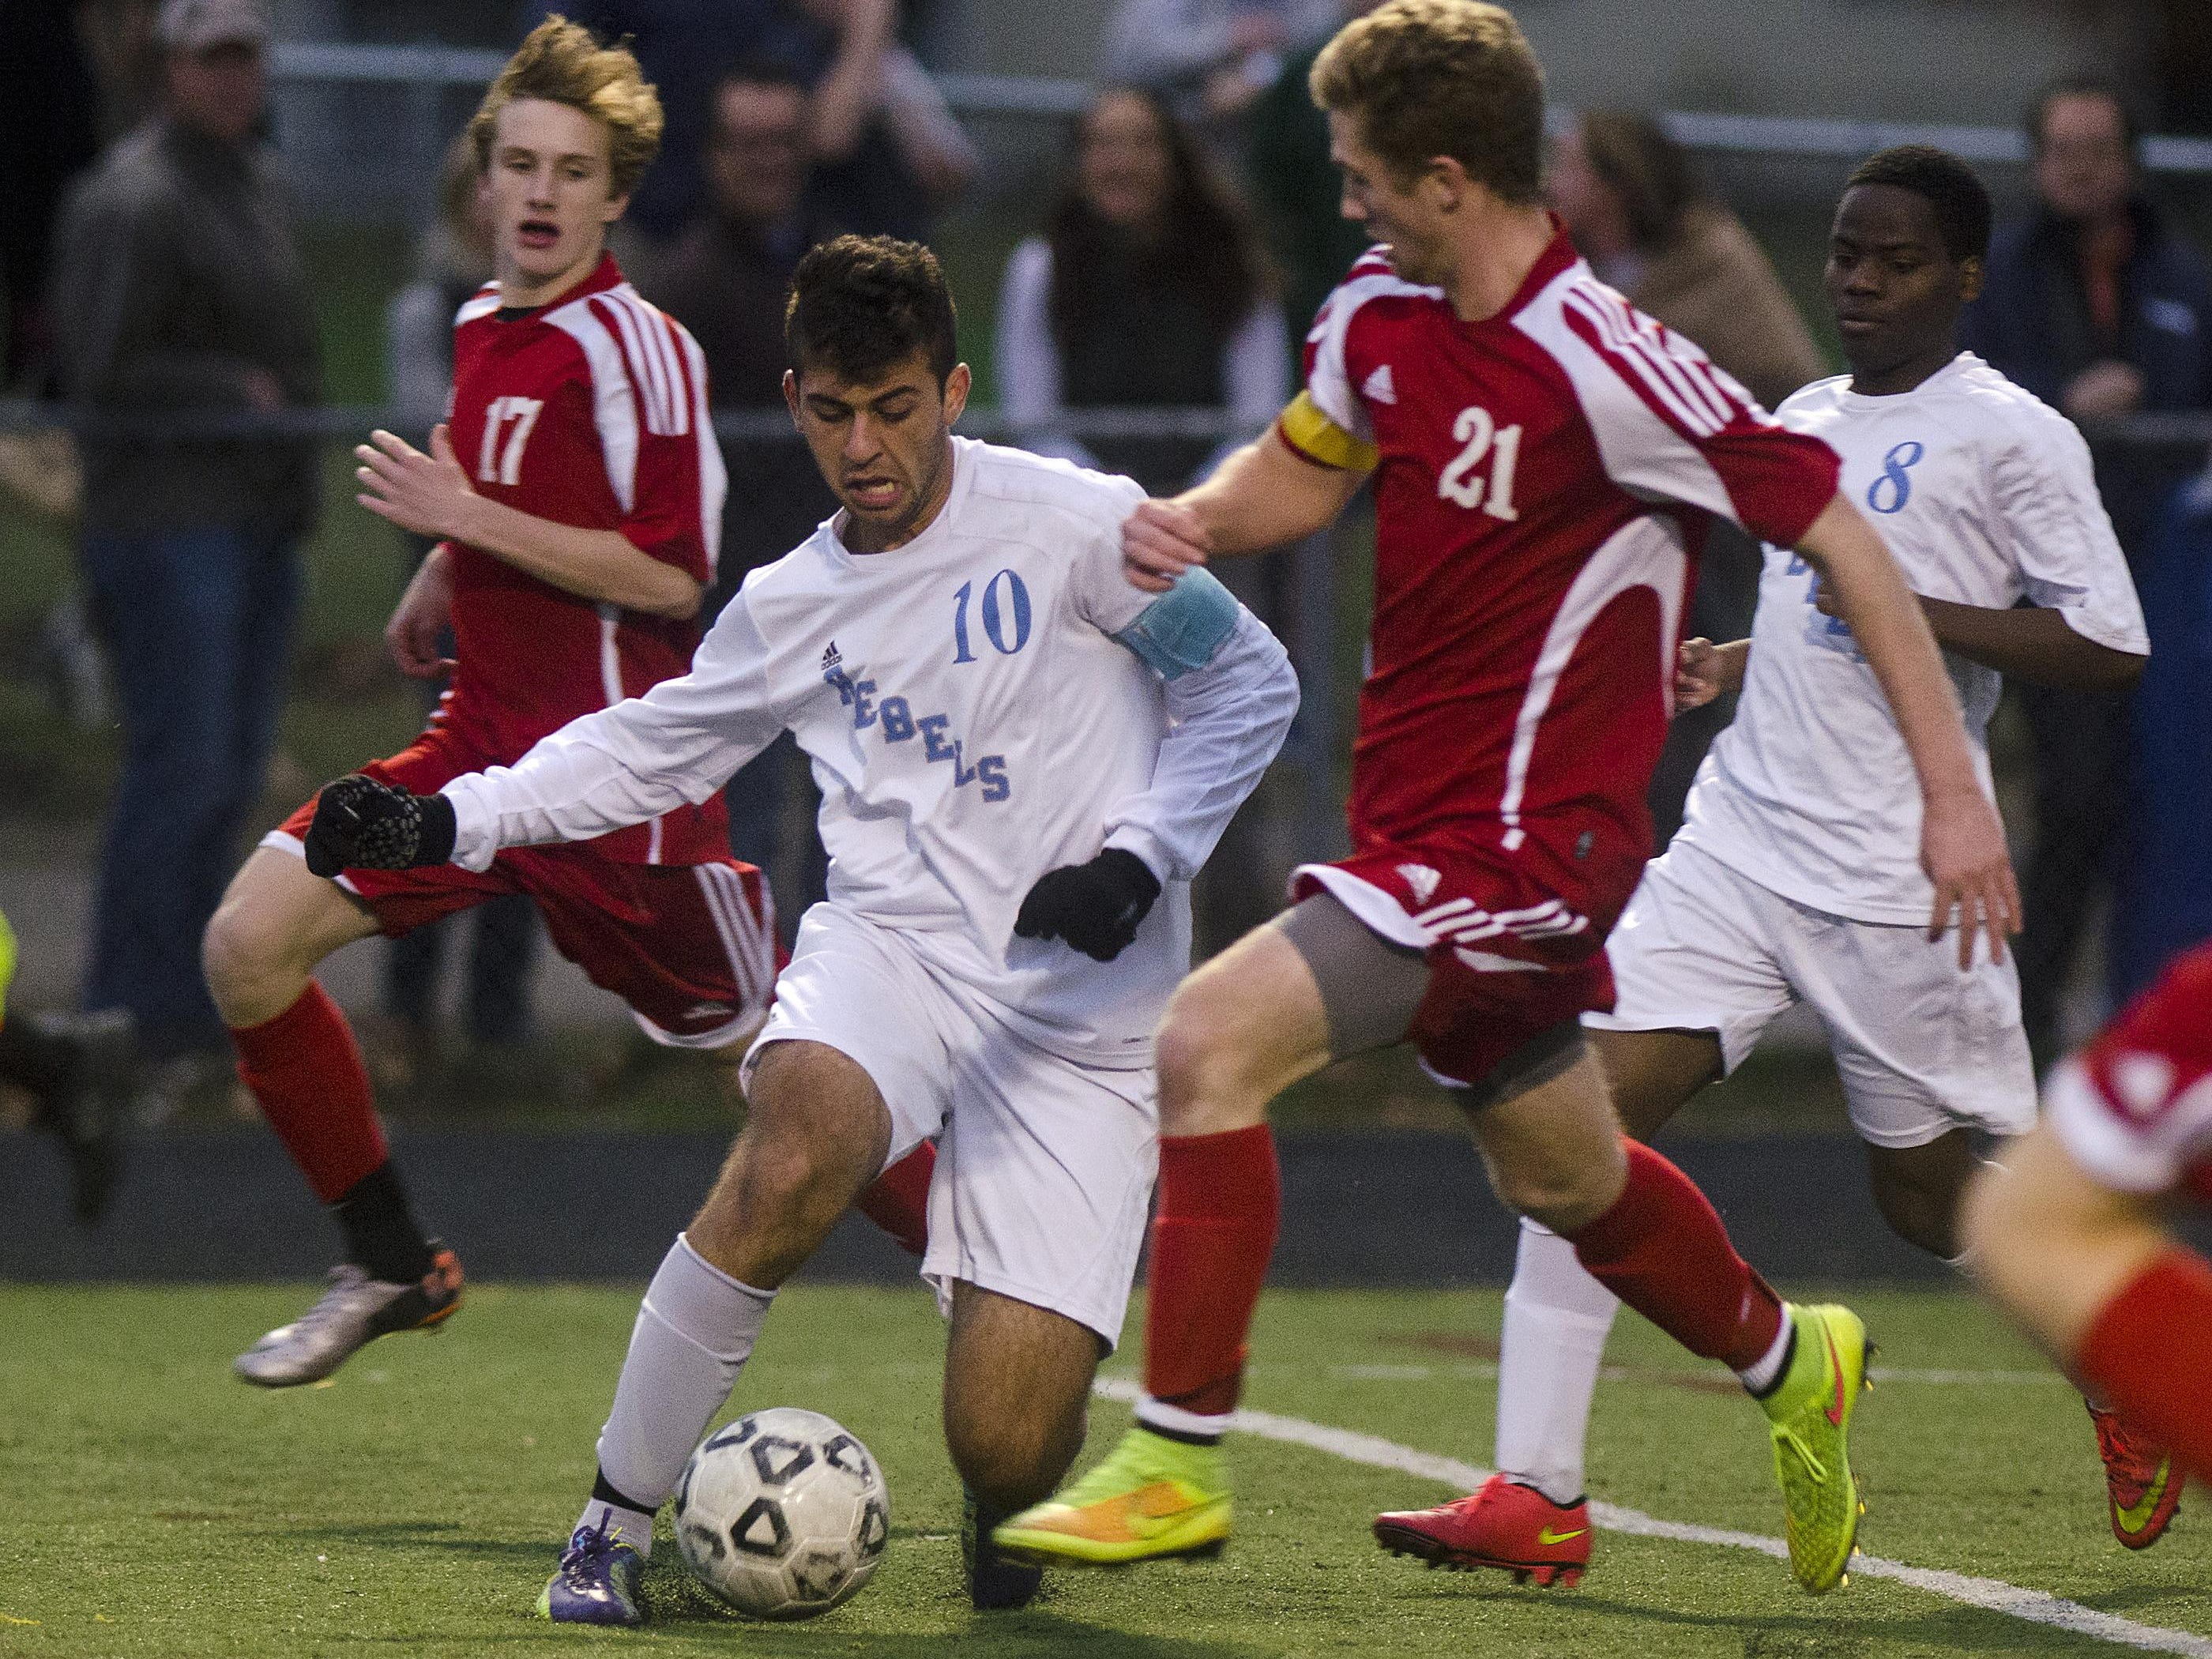 South Burlington's Ismail Temirov (10) attempts to dribble past Champlain Valley's Patrick McCue (21) during the second half of 2014 Division I boys soccer semifinal.